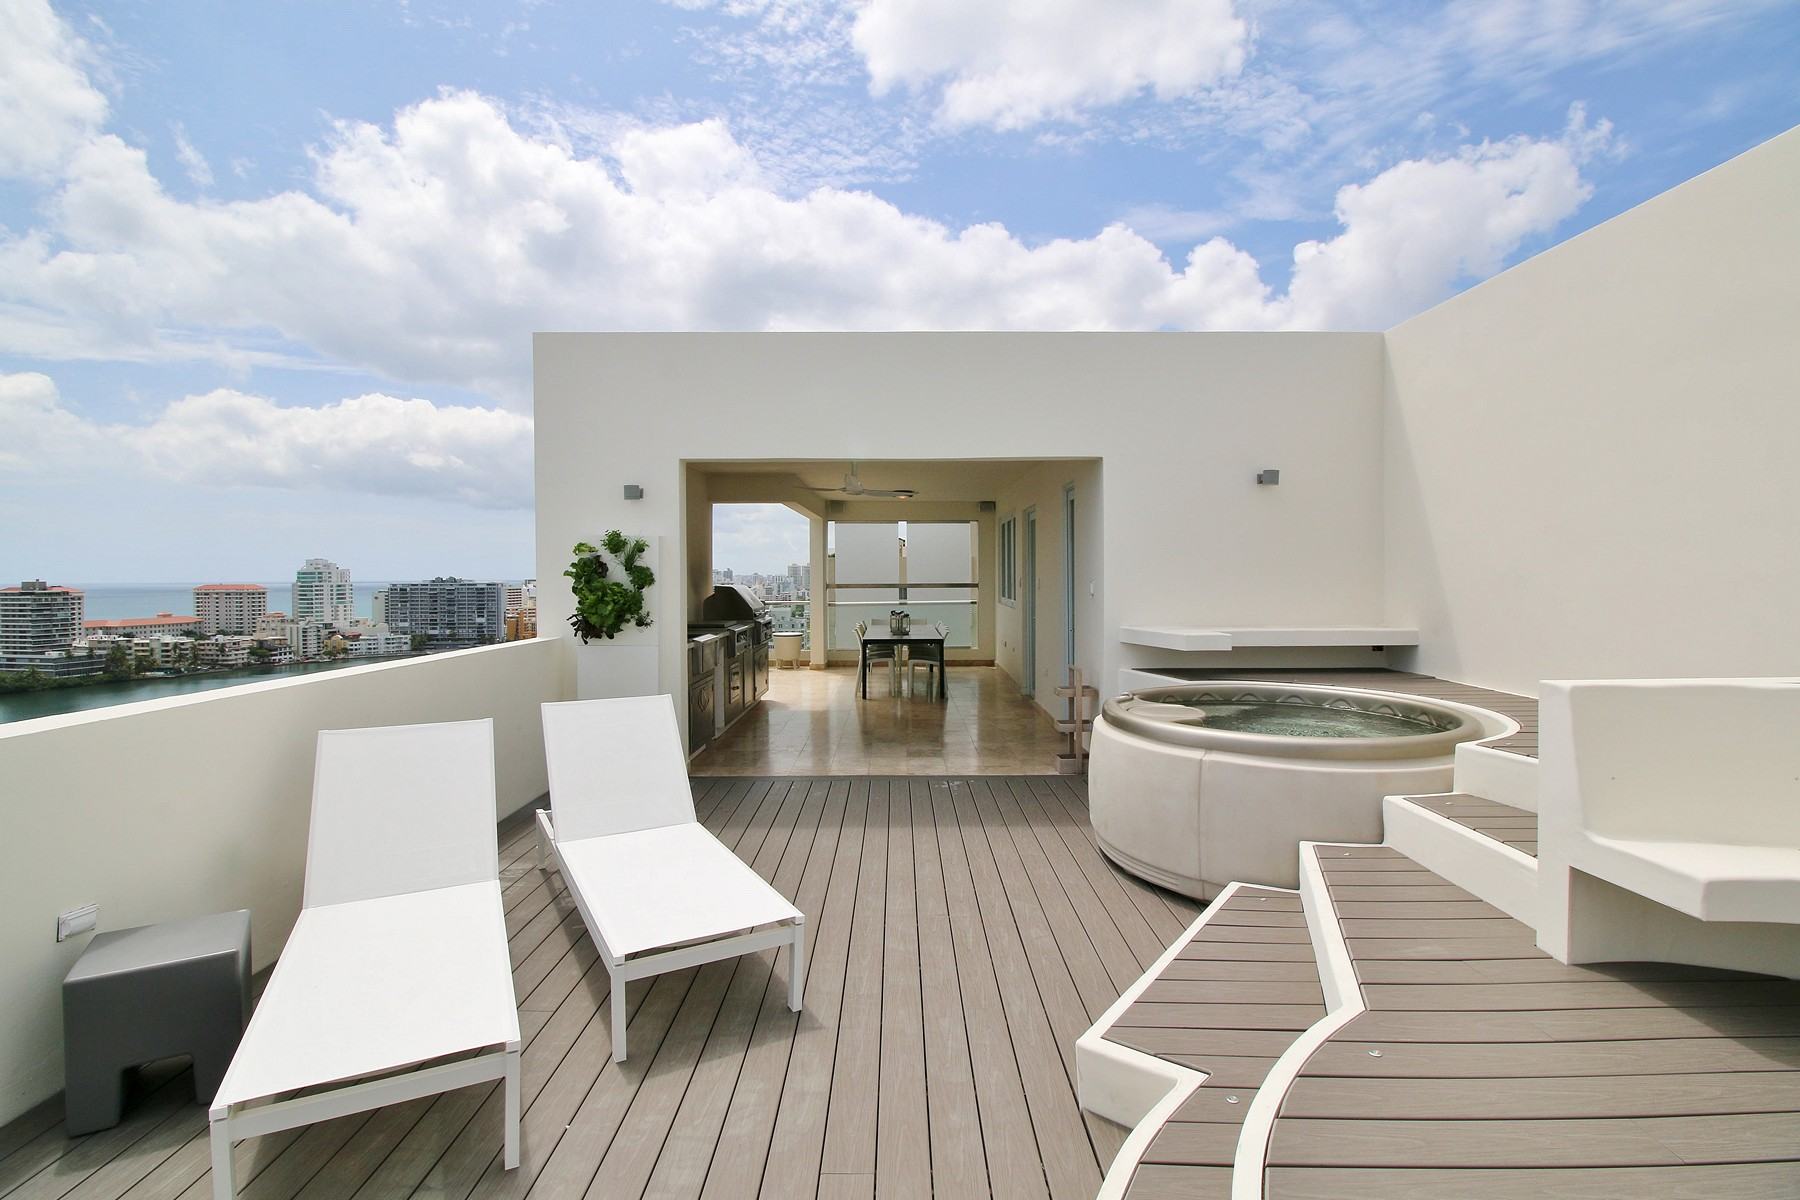 Property For Sale at 558 Cuevillas Street Penthouse, Miramar